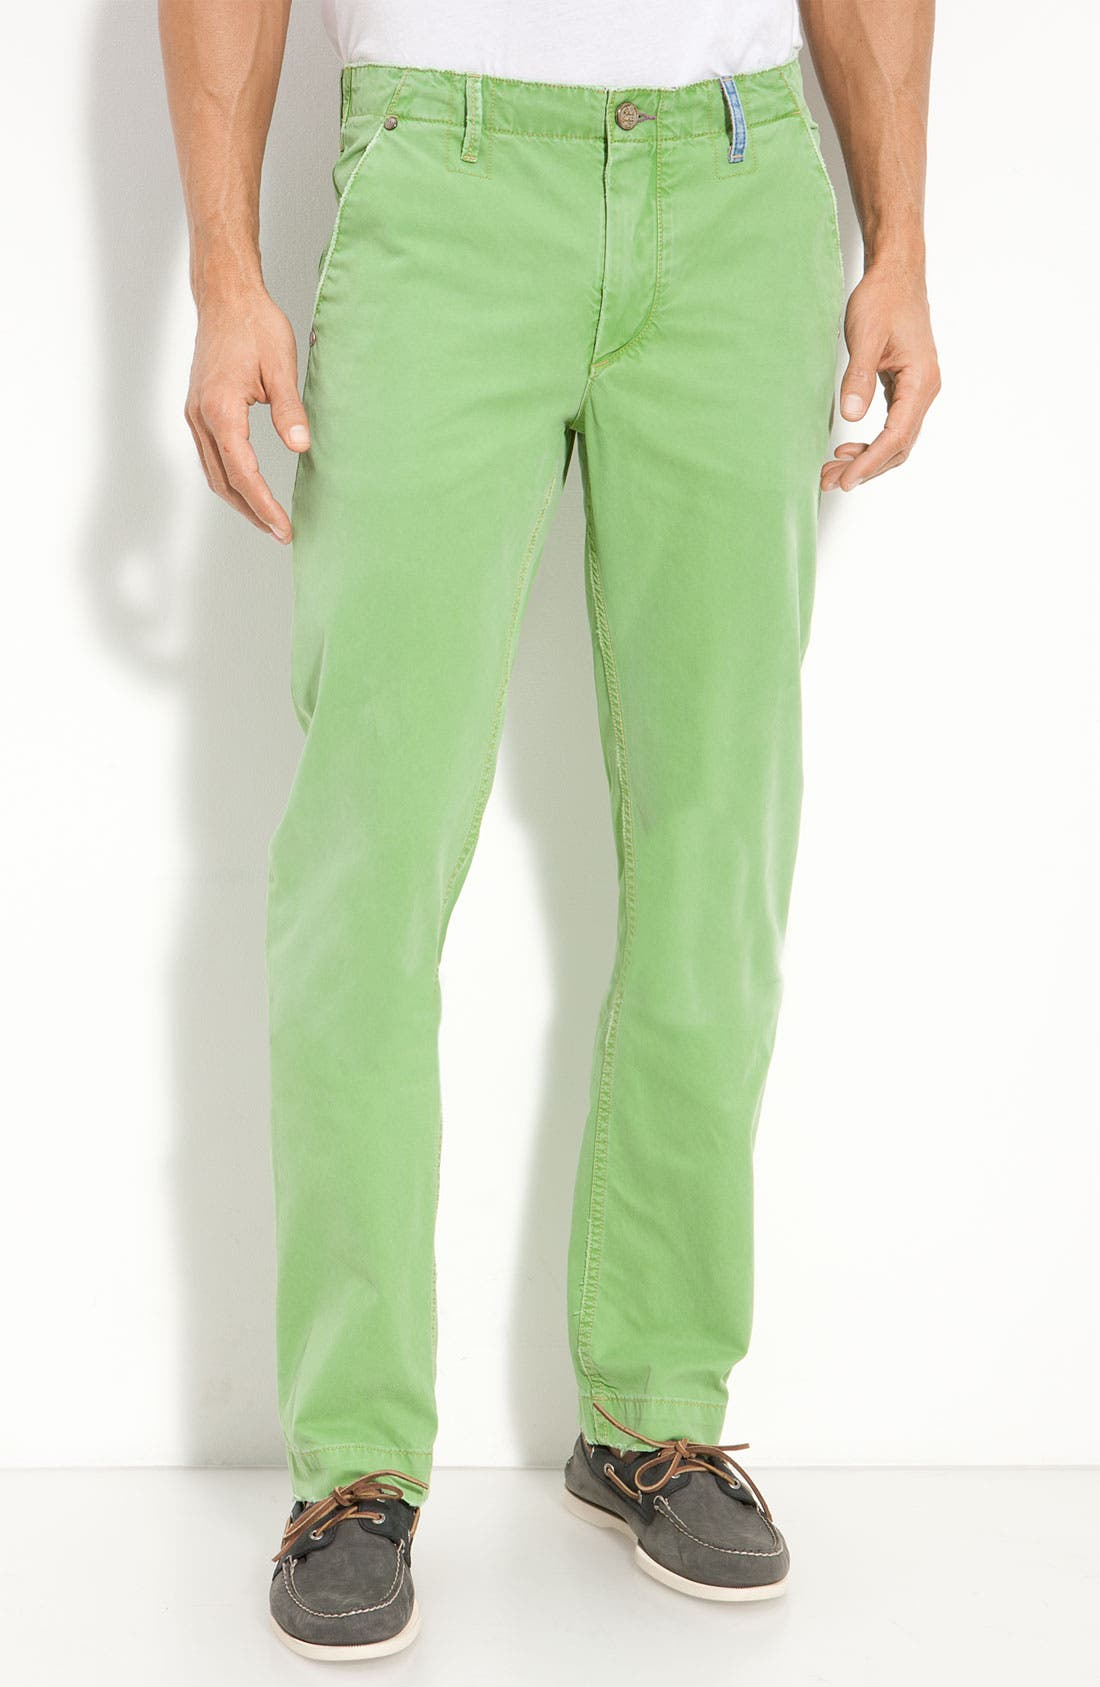 Alternate Image 1 Selected - Robert Graham Jeans 'Yates' Classic Fit Pants